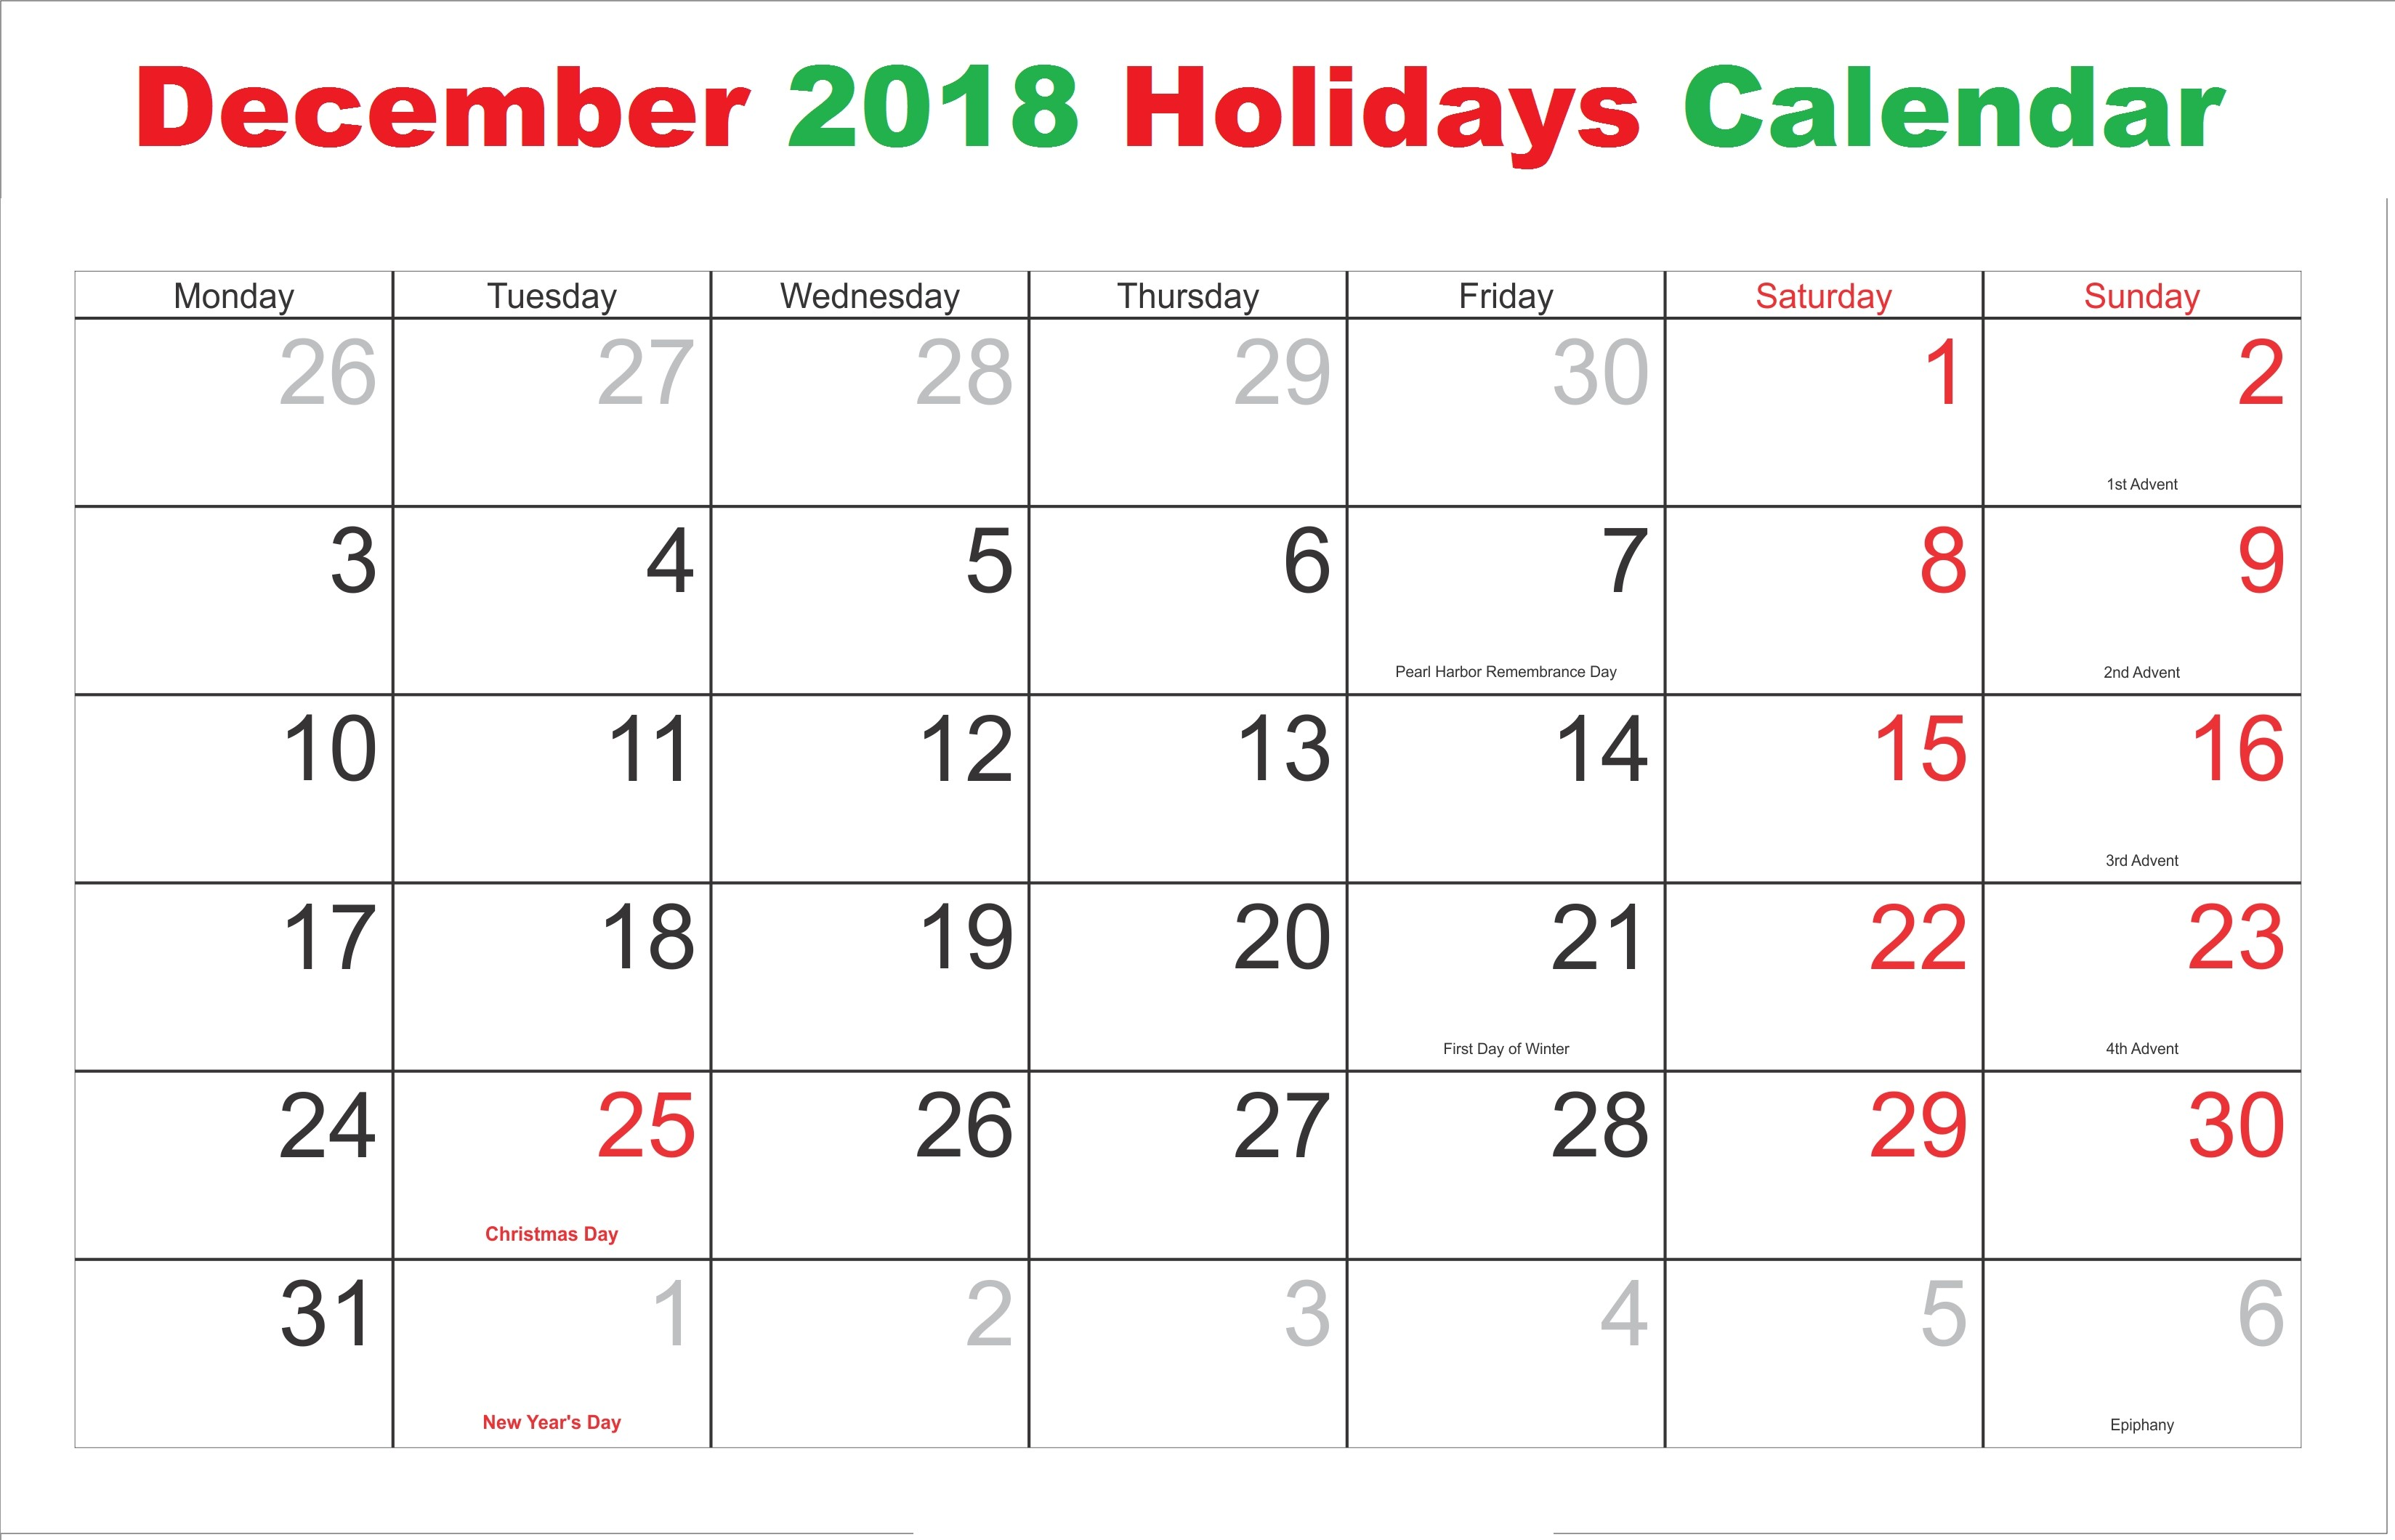 december 2018 holiday calendar free calendar printable 2018 2019 december calendar 2019 with